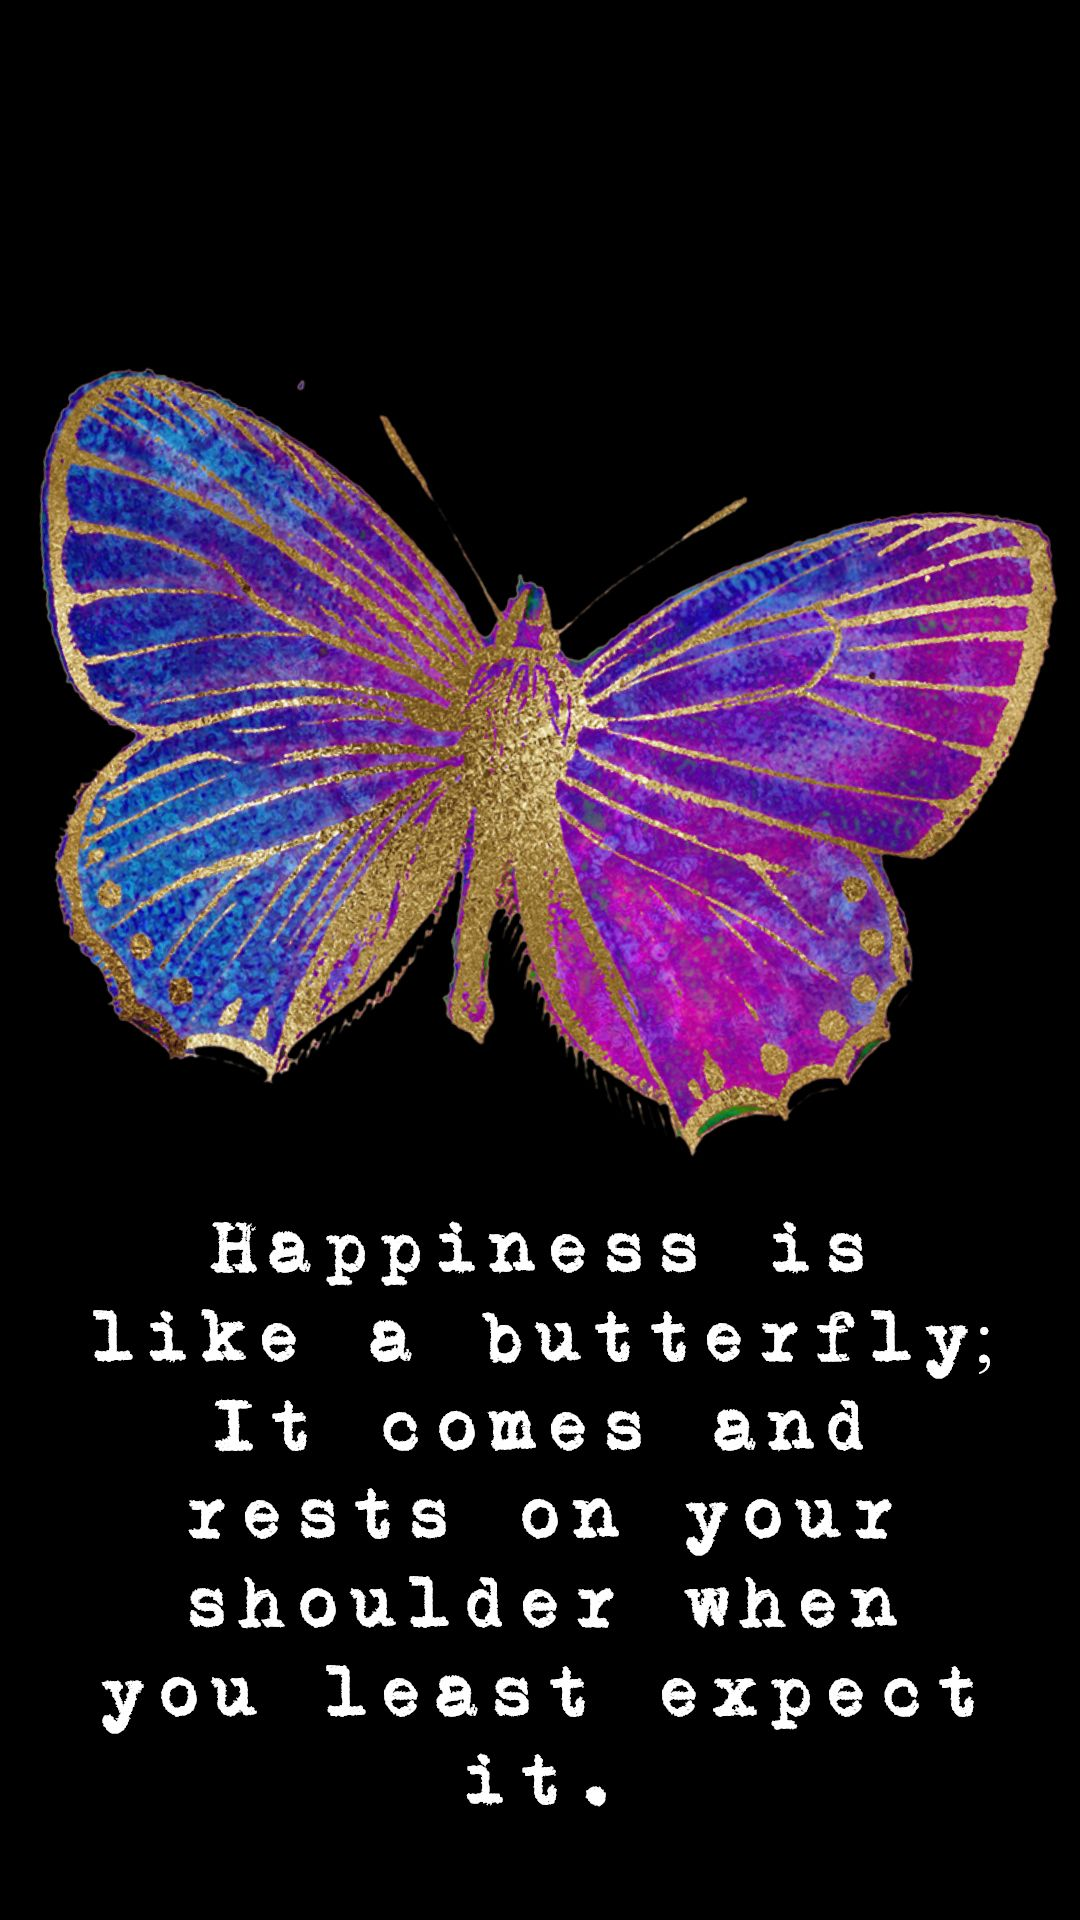 Phone Wallpaper Phone Backgrounds Quotes Free Phone Wallpapers Pretty Phone Wallpaper Butterfly Quotes Free Phone Wallpaper